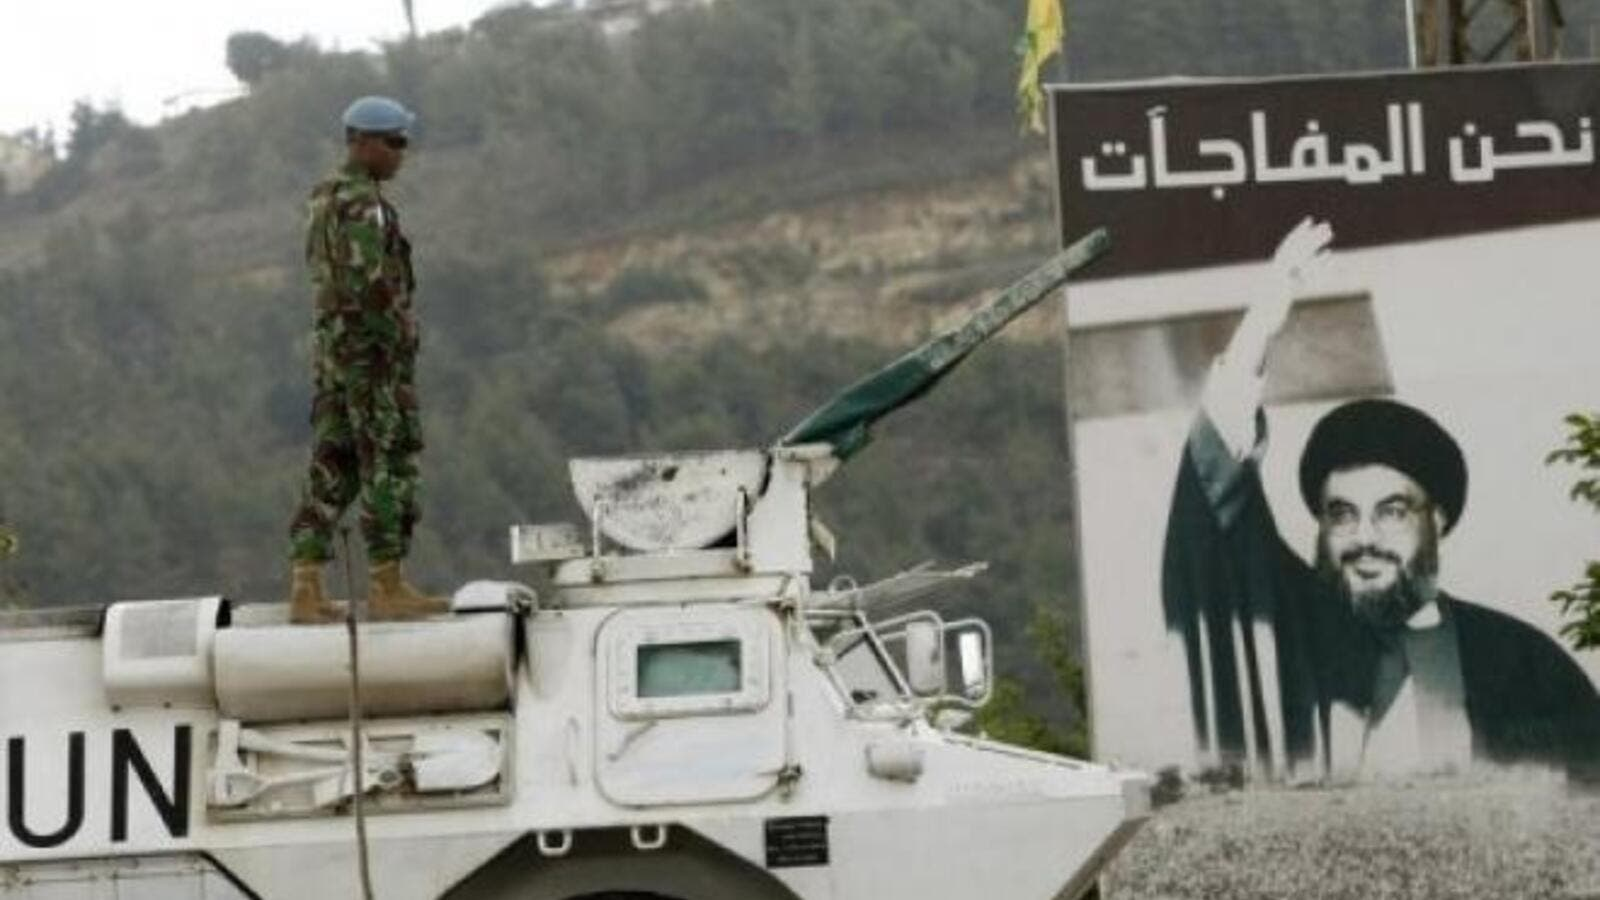 A UN peacekeeper is seen near Lebanon's Blue Line, with a picture of the Hezbollah leader Hassan Nasrallah in the background. (AFP/File)